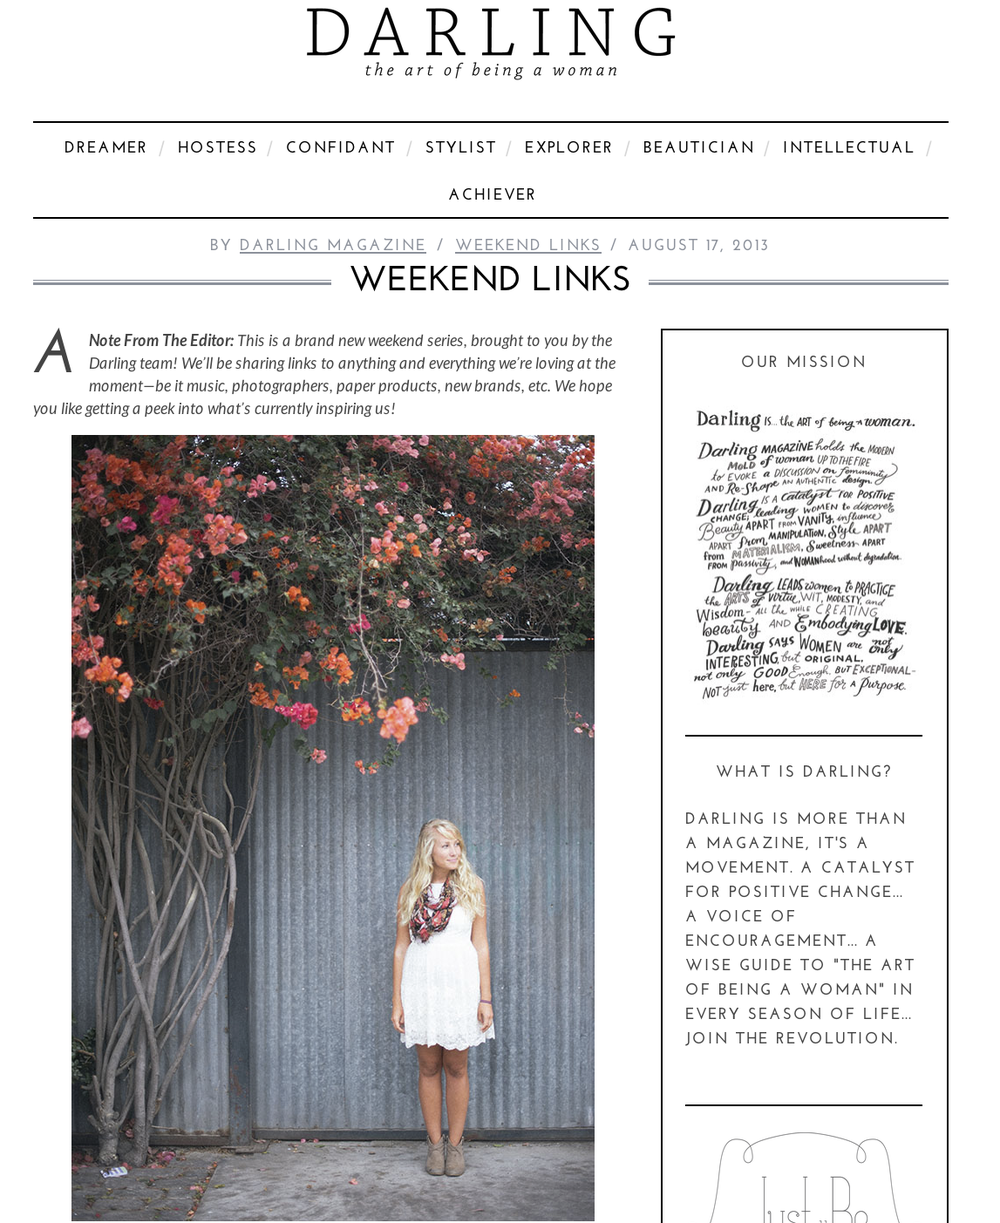 Weekend Links | Darling Magazine Blog    http://darlingmagazine.org/weekend-links/